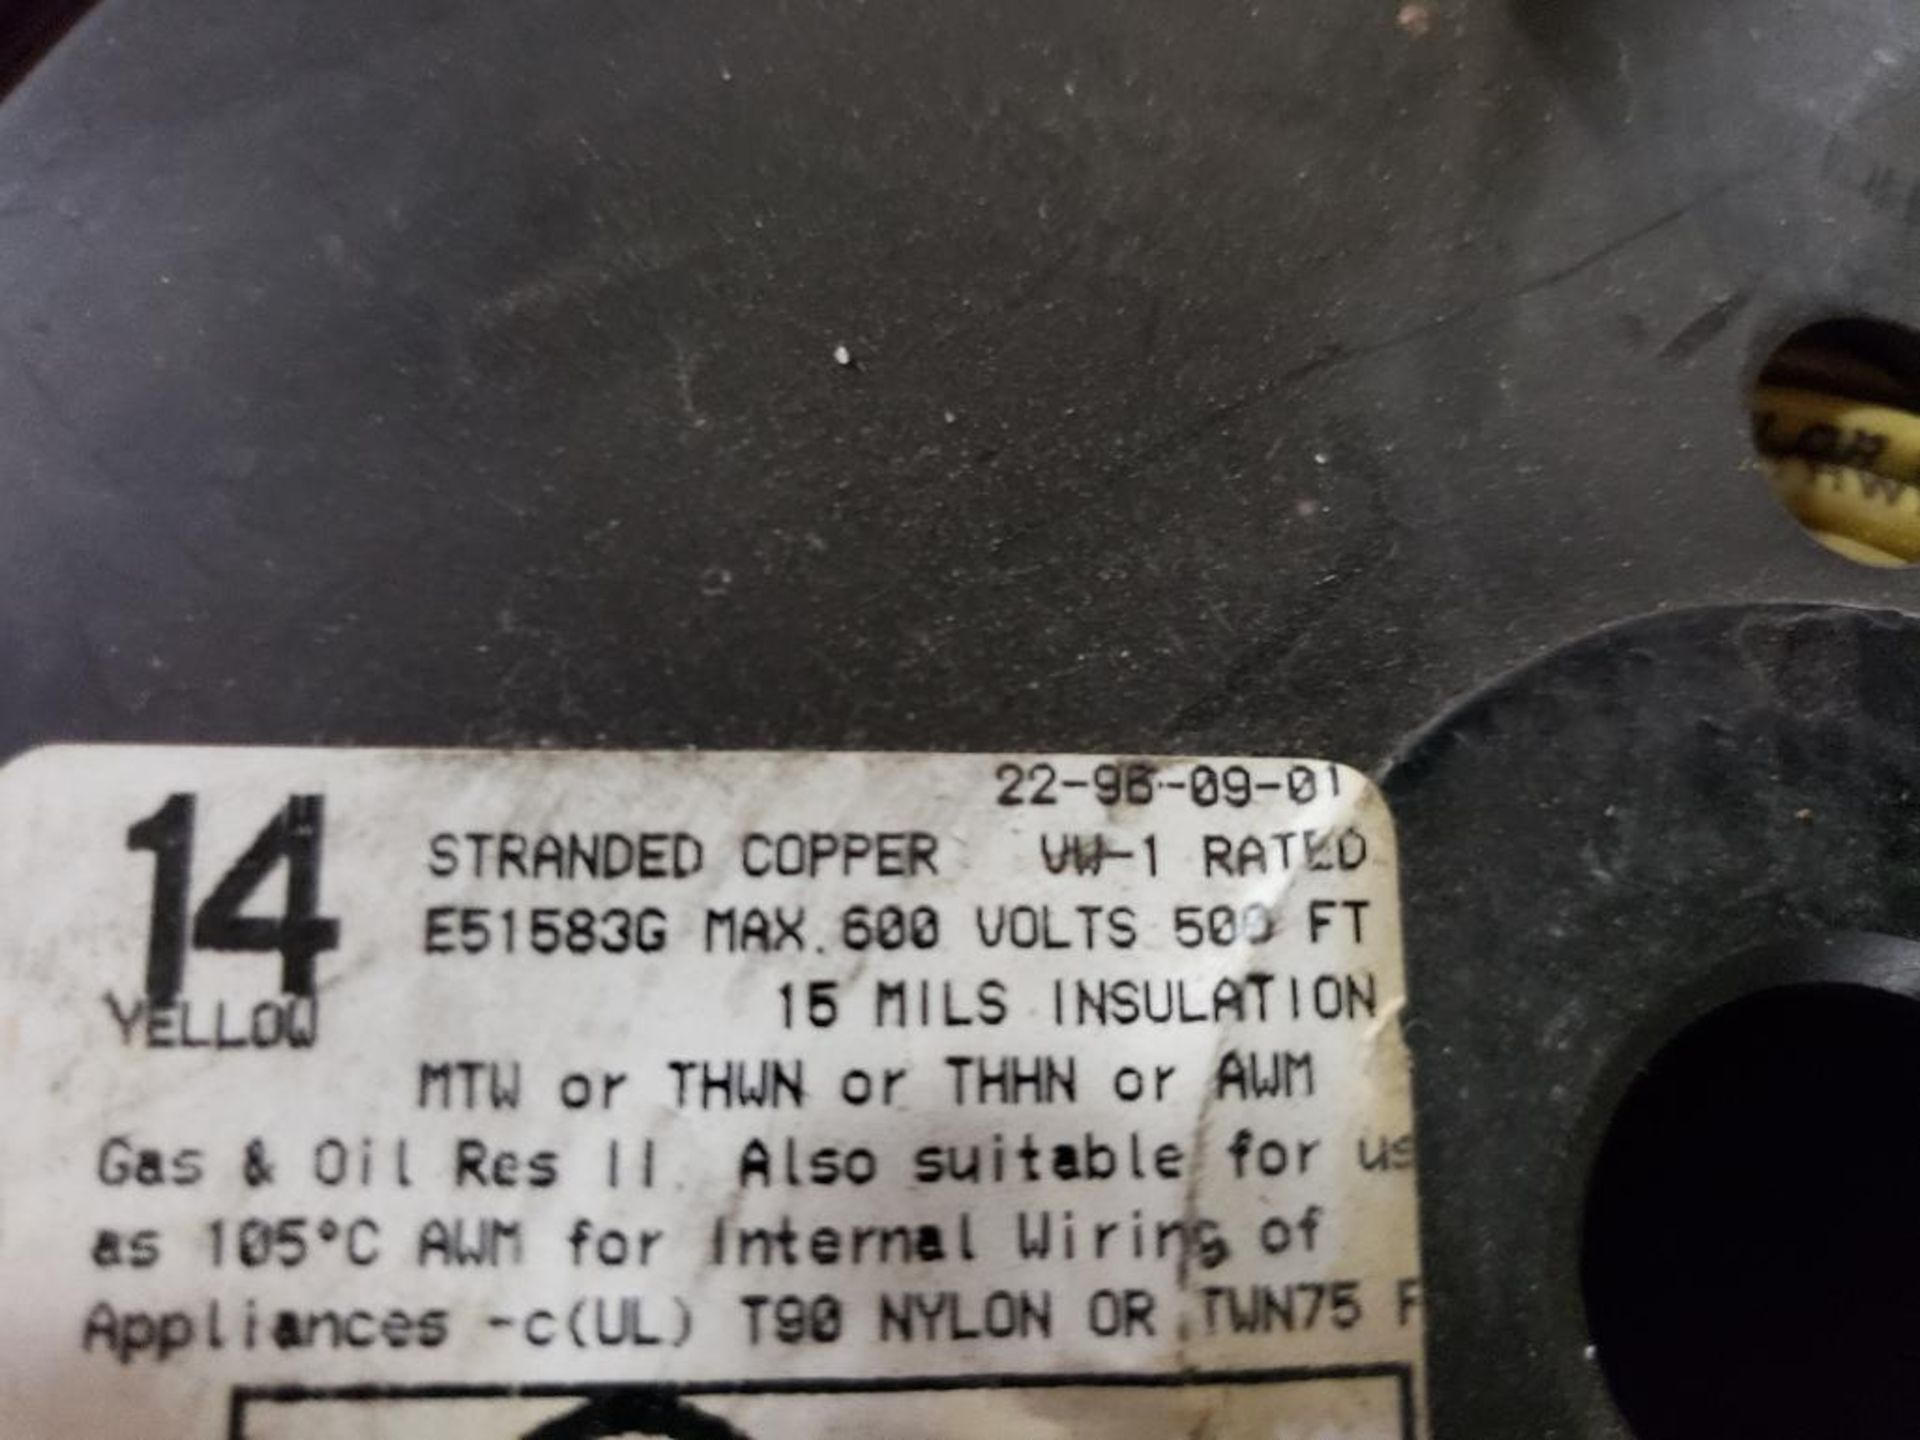 Qty 4 - Spool of contractor wire. 14-Yellow, 14-Blue. - Image 3 of 6